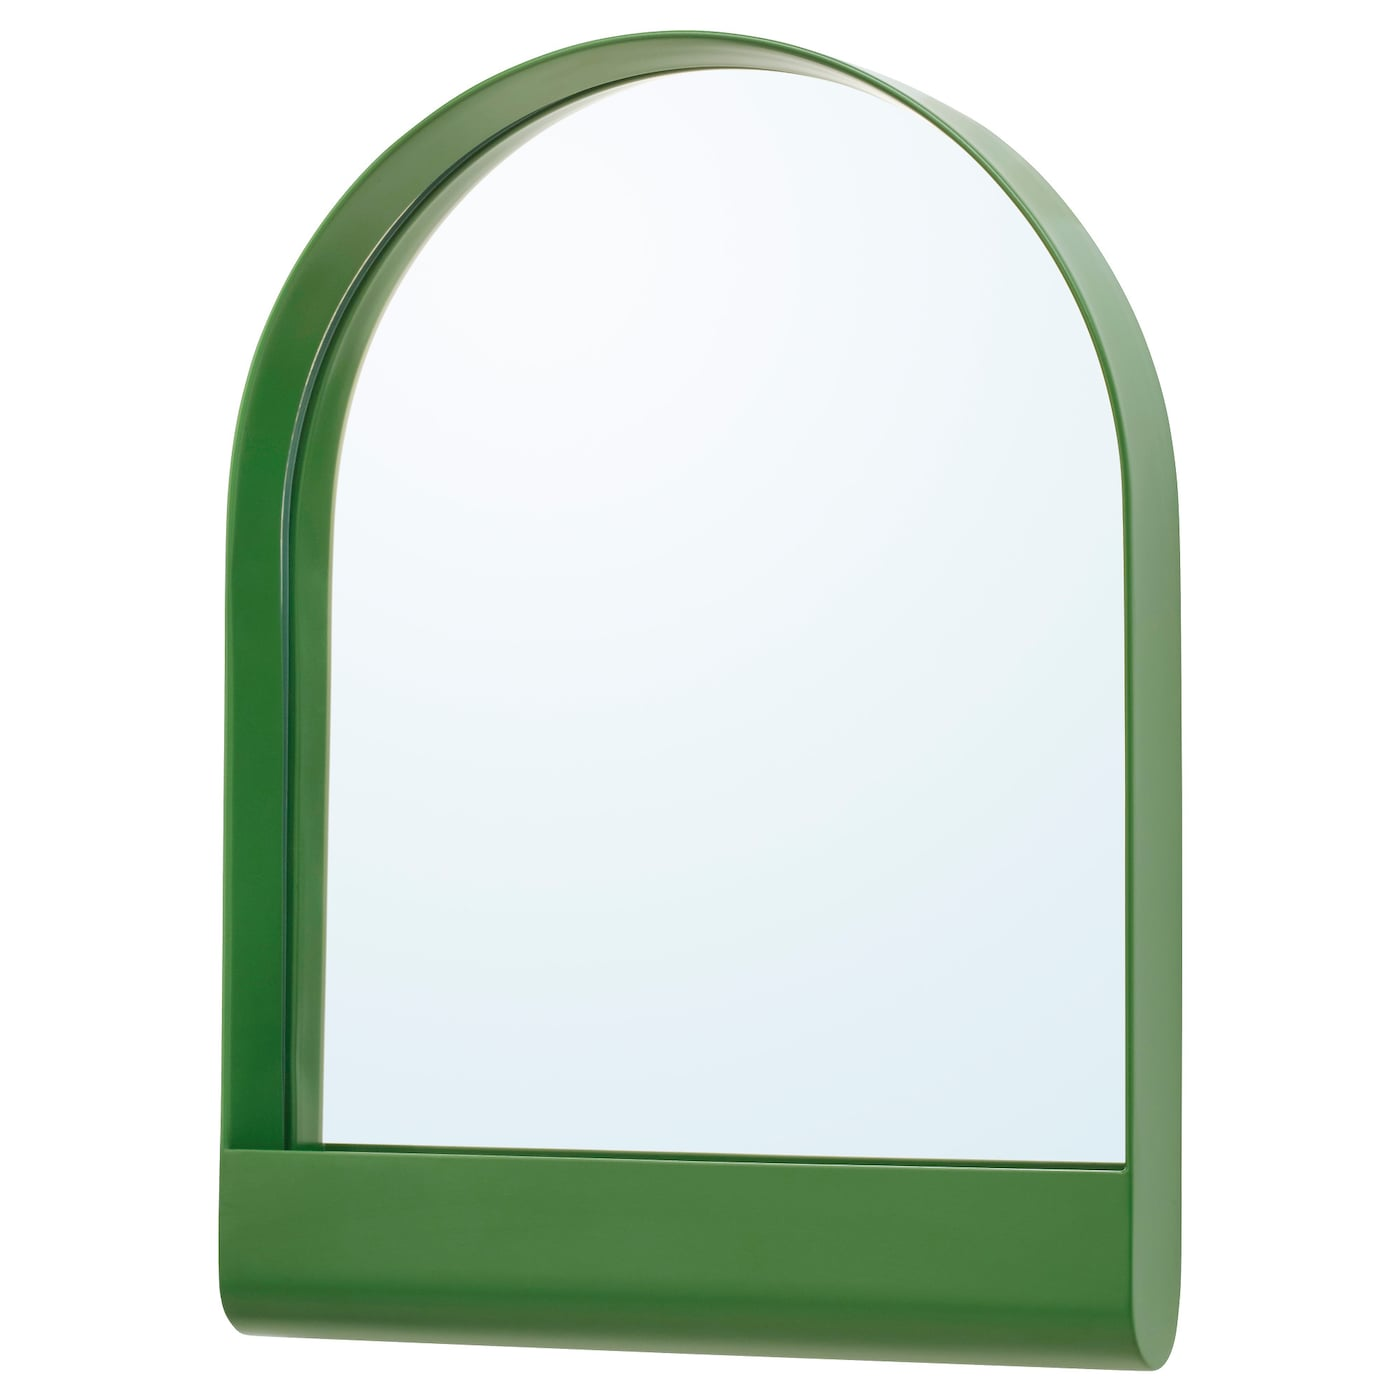 IKEA YPPERLIG mirror Suitable for use in most rooms, and tested and  approved for bathroom